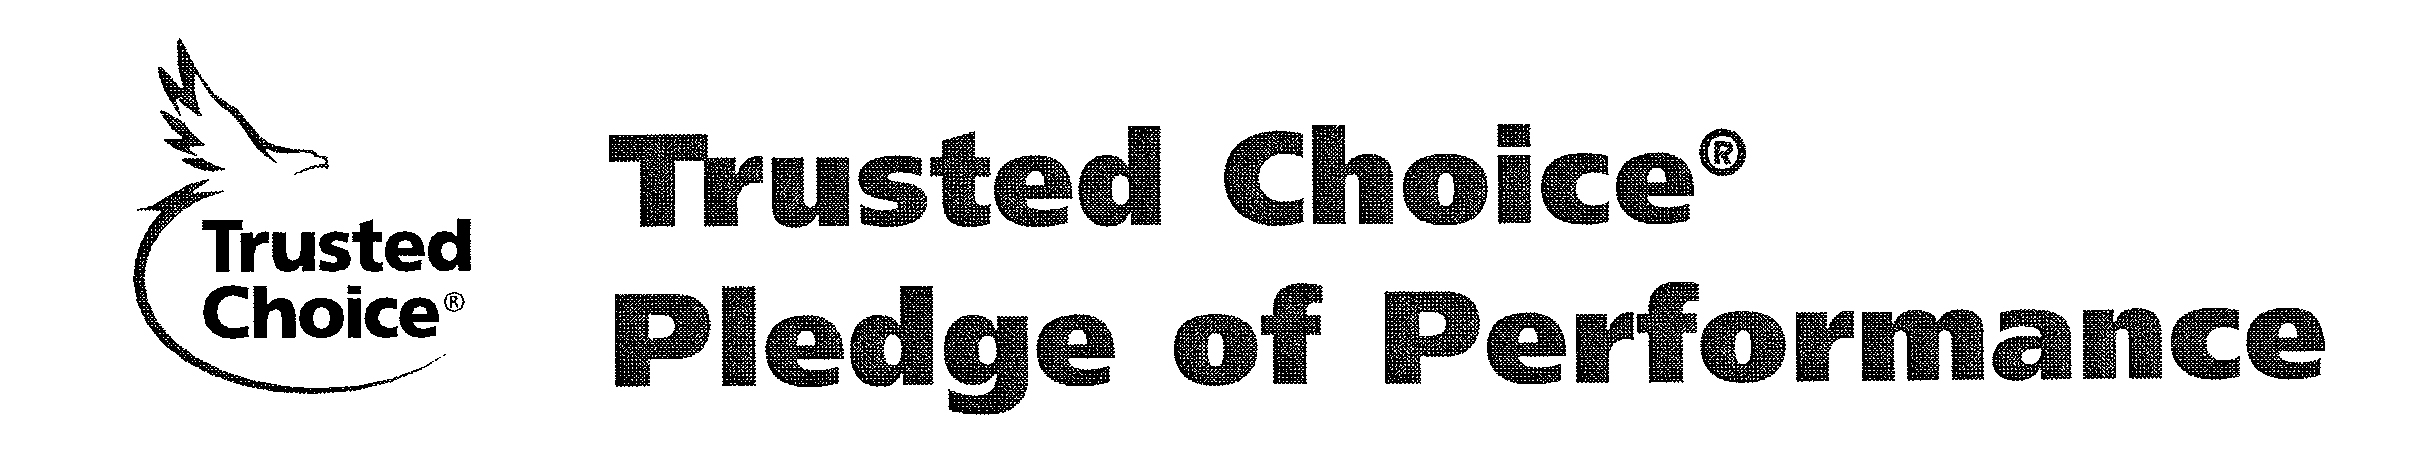 Trusted Choice pledge of performance badge